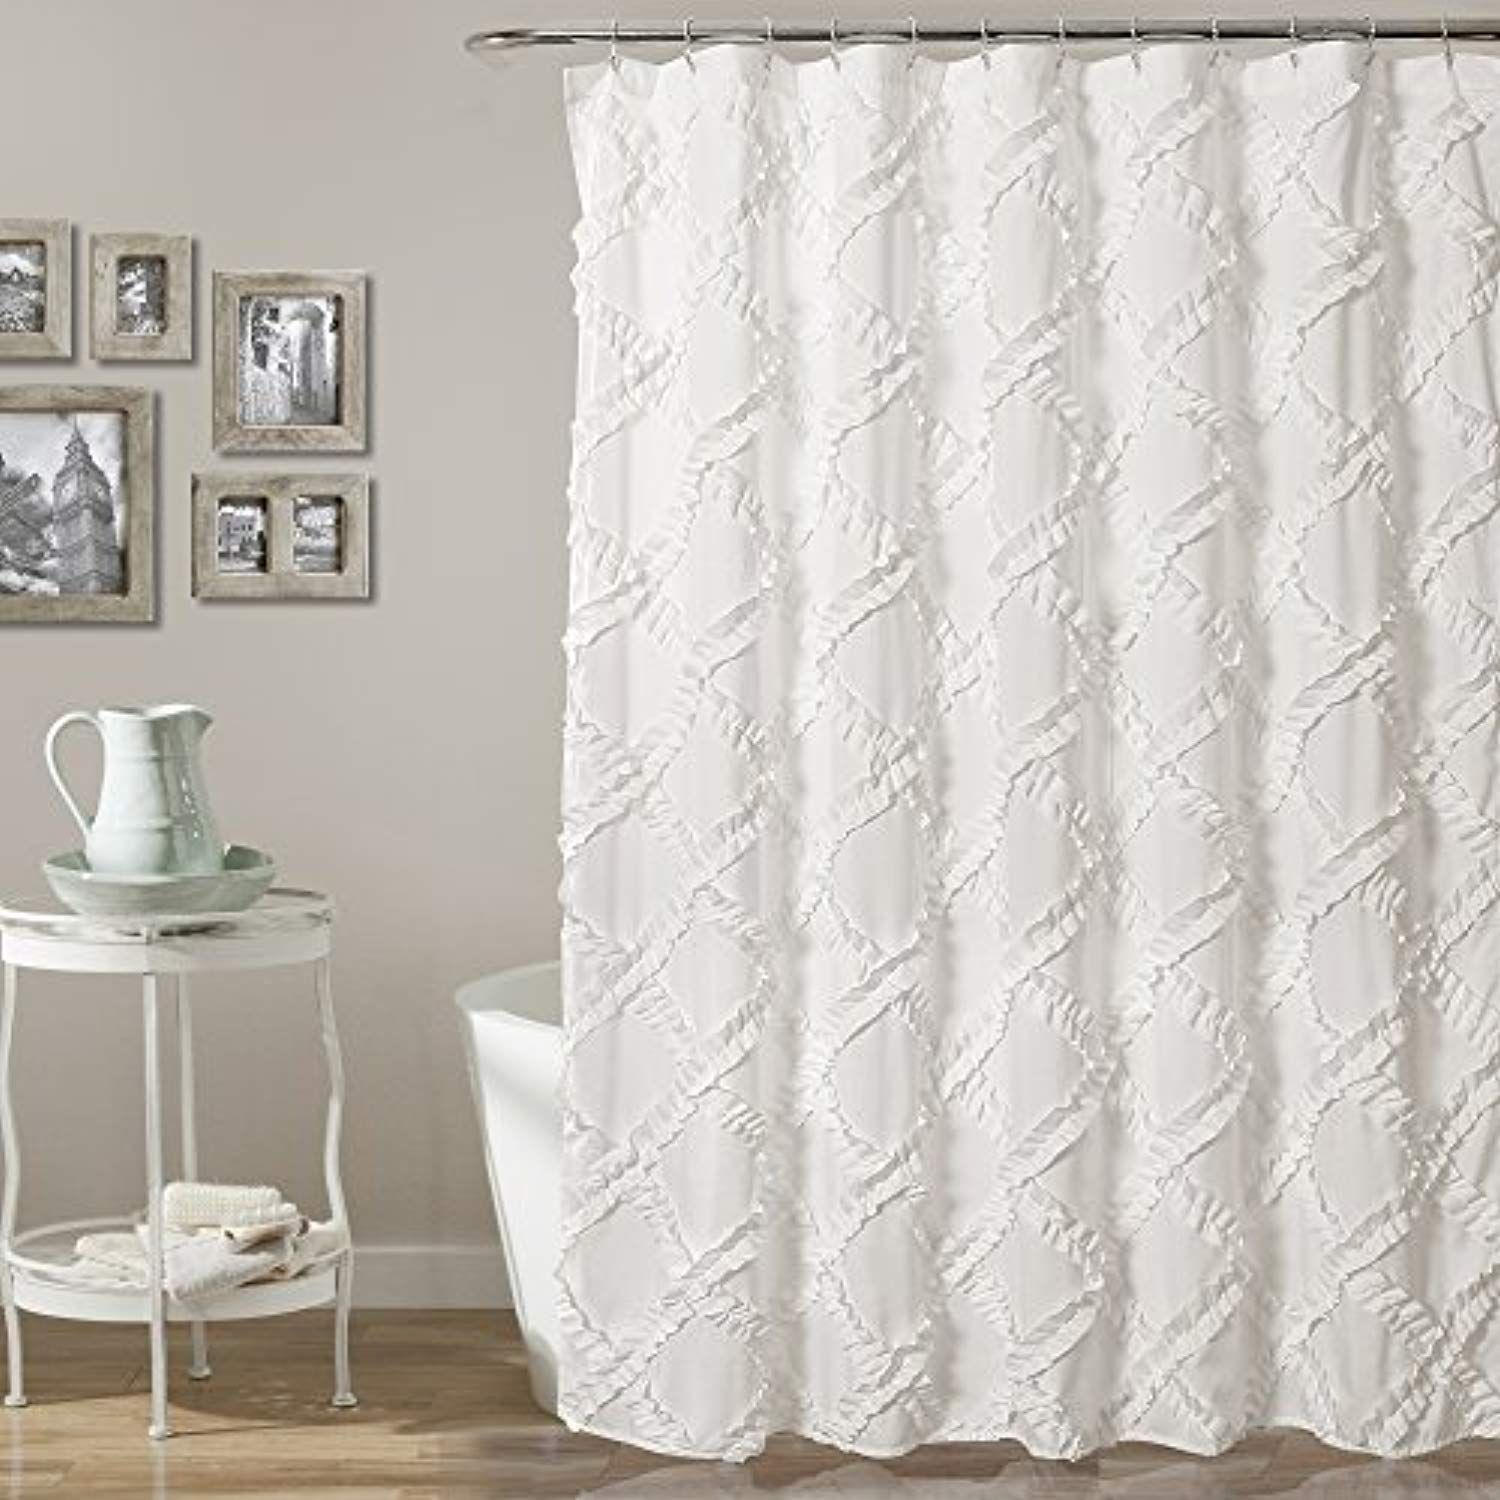 Lush Decor Ruffle Diamond Shower Curtain 72 X White Read More At The Image Link This Is An Affiliate